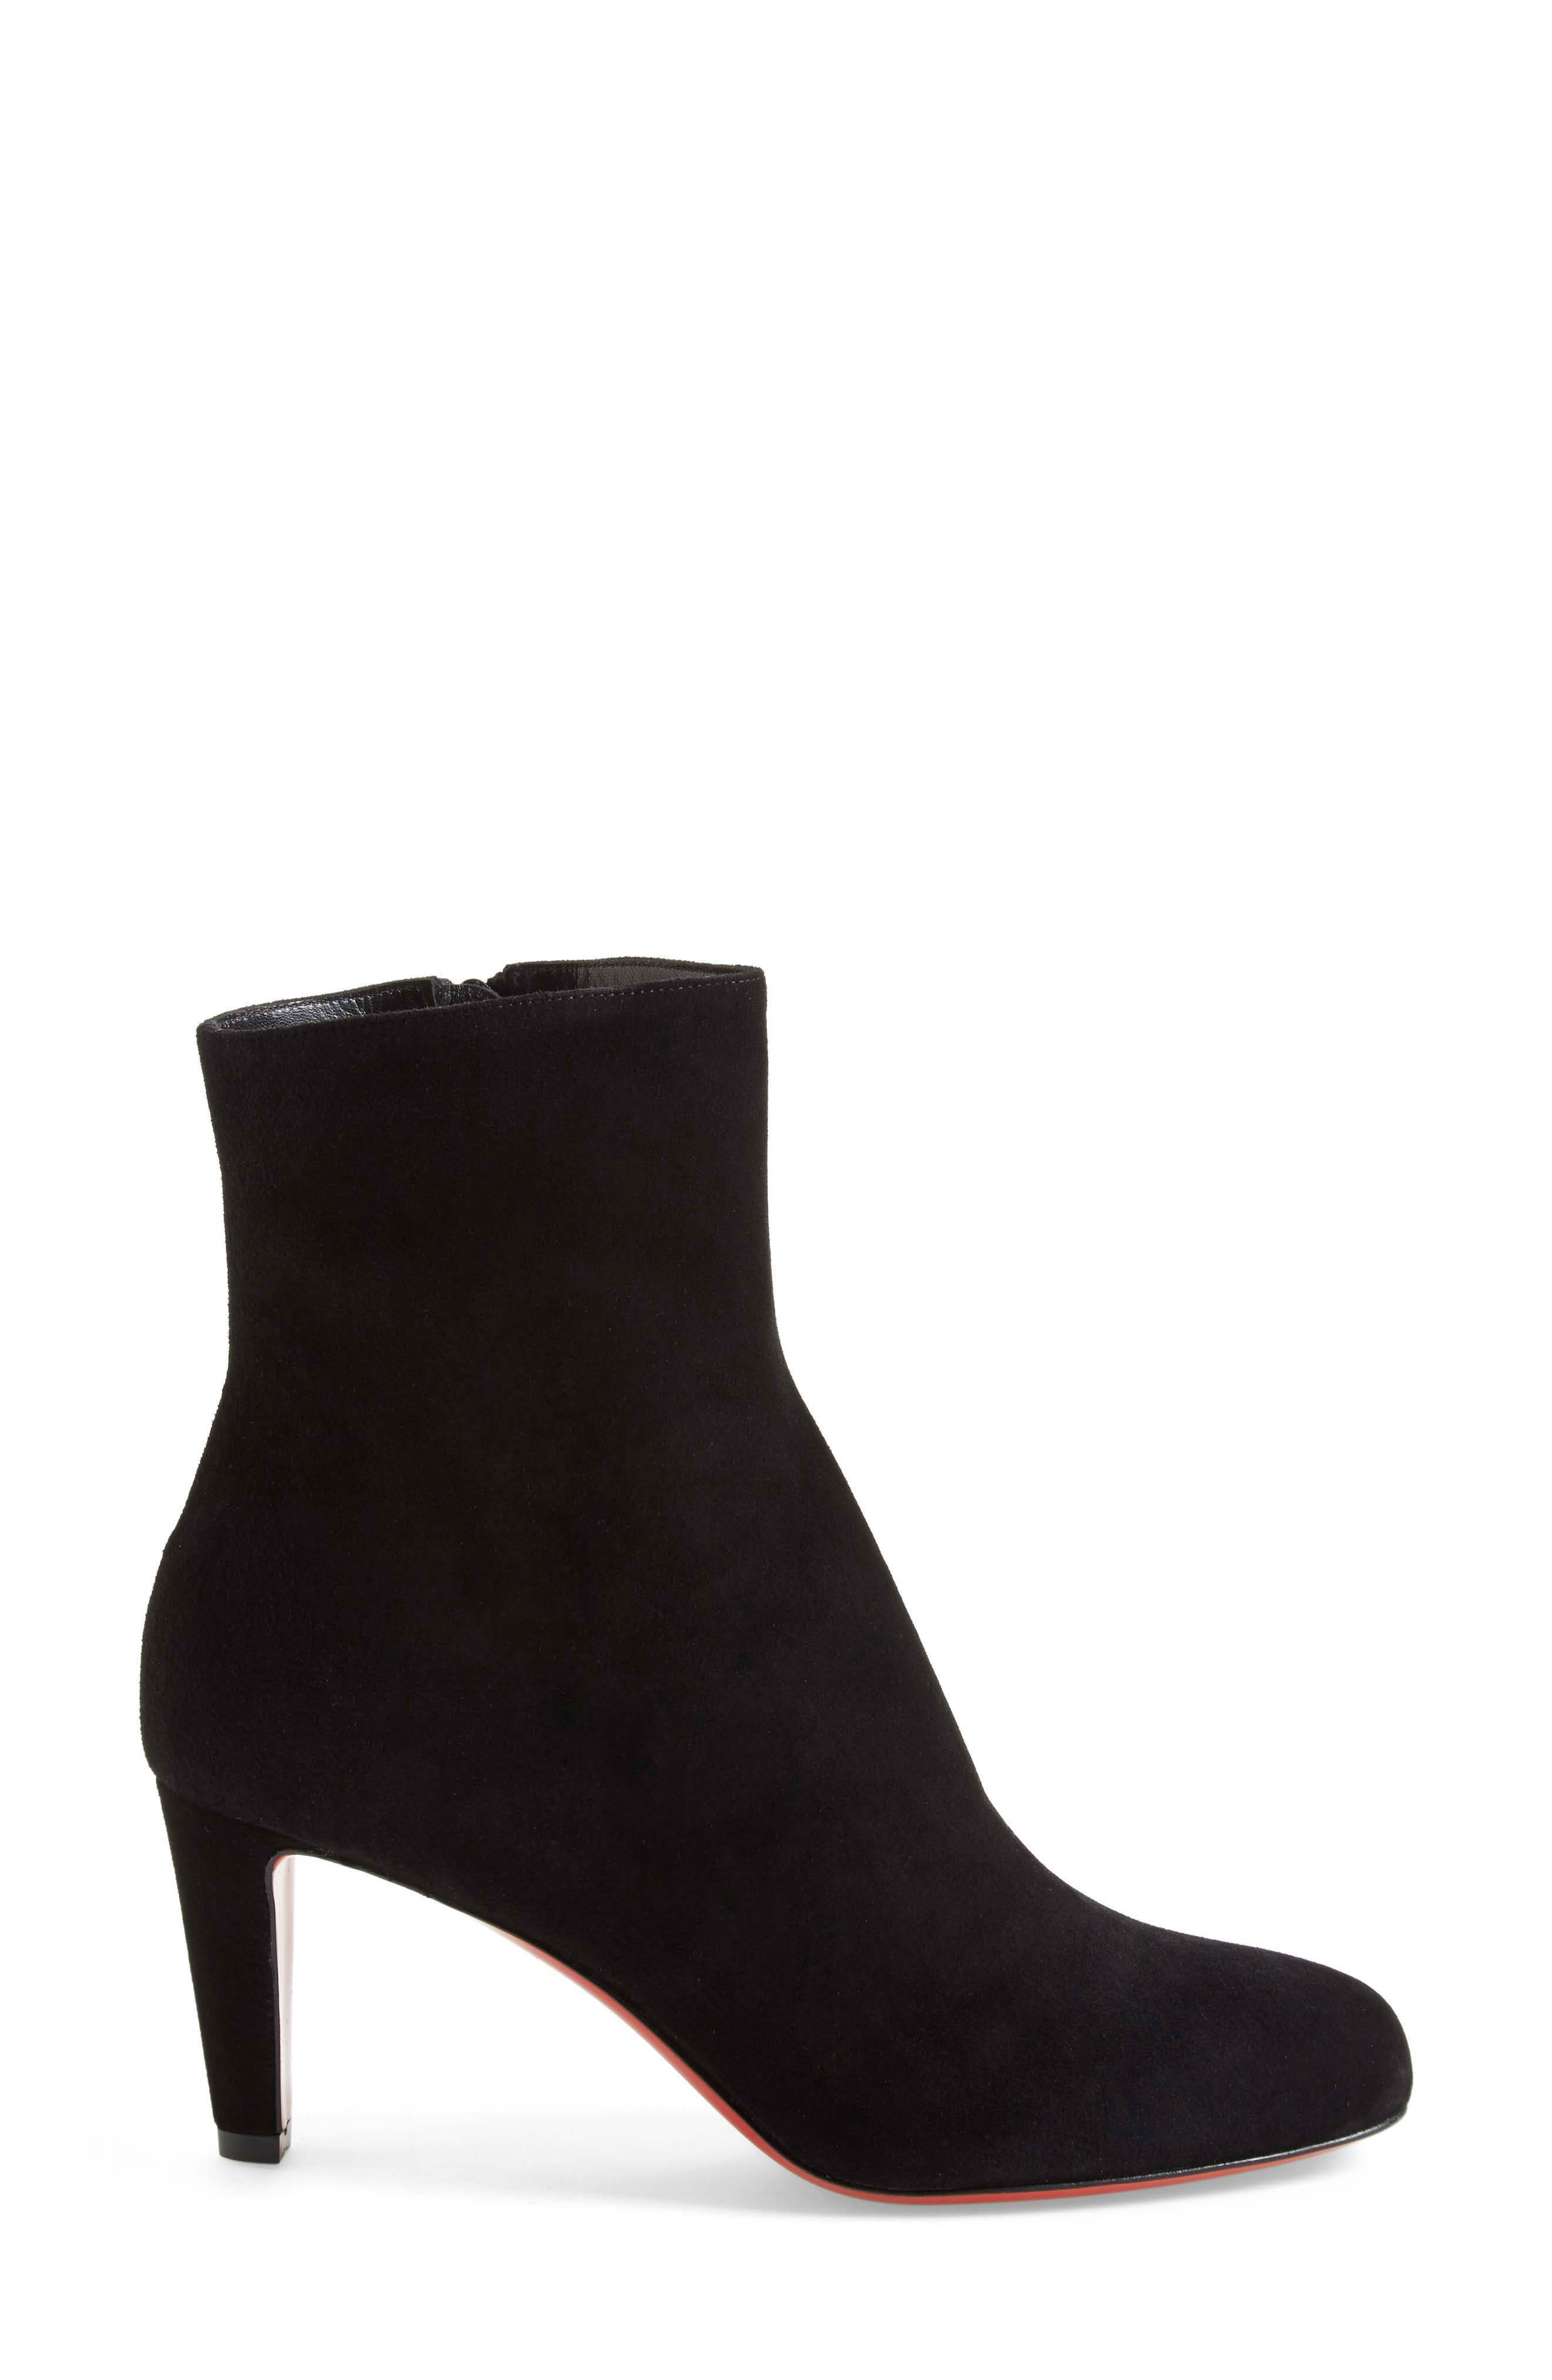 'Top' Ankle Bootie,                             Alternate thumbnail 4, color,                             Black Suede